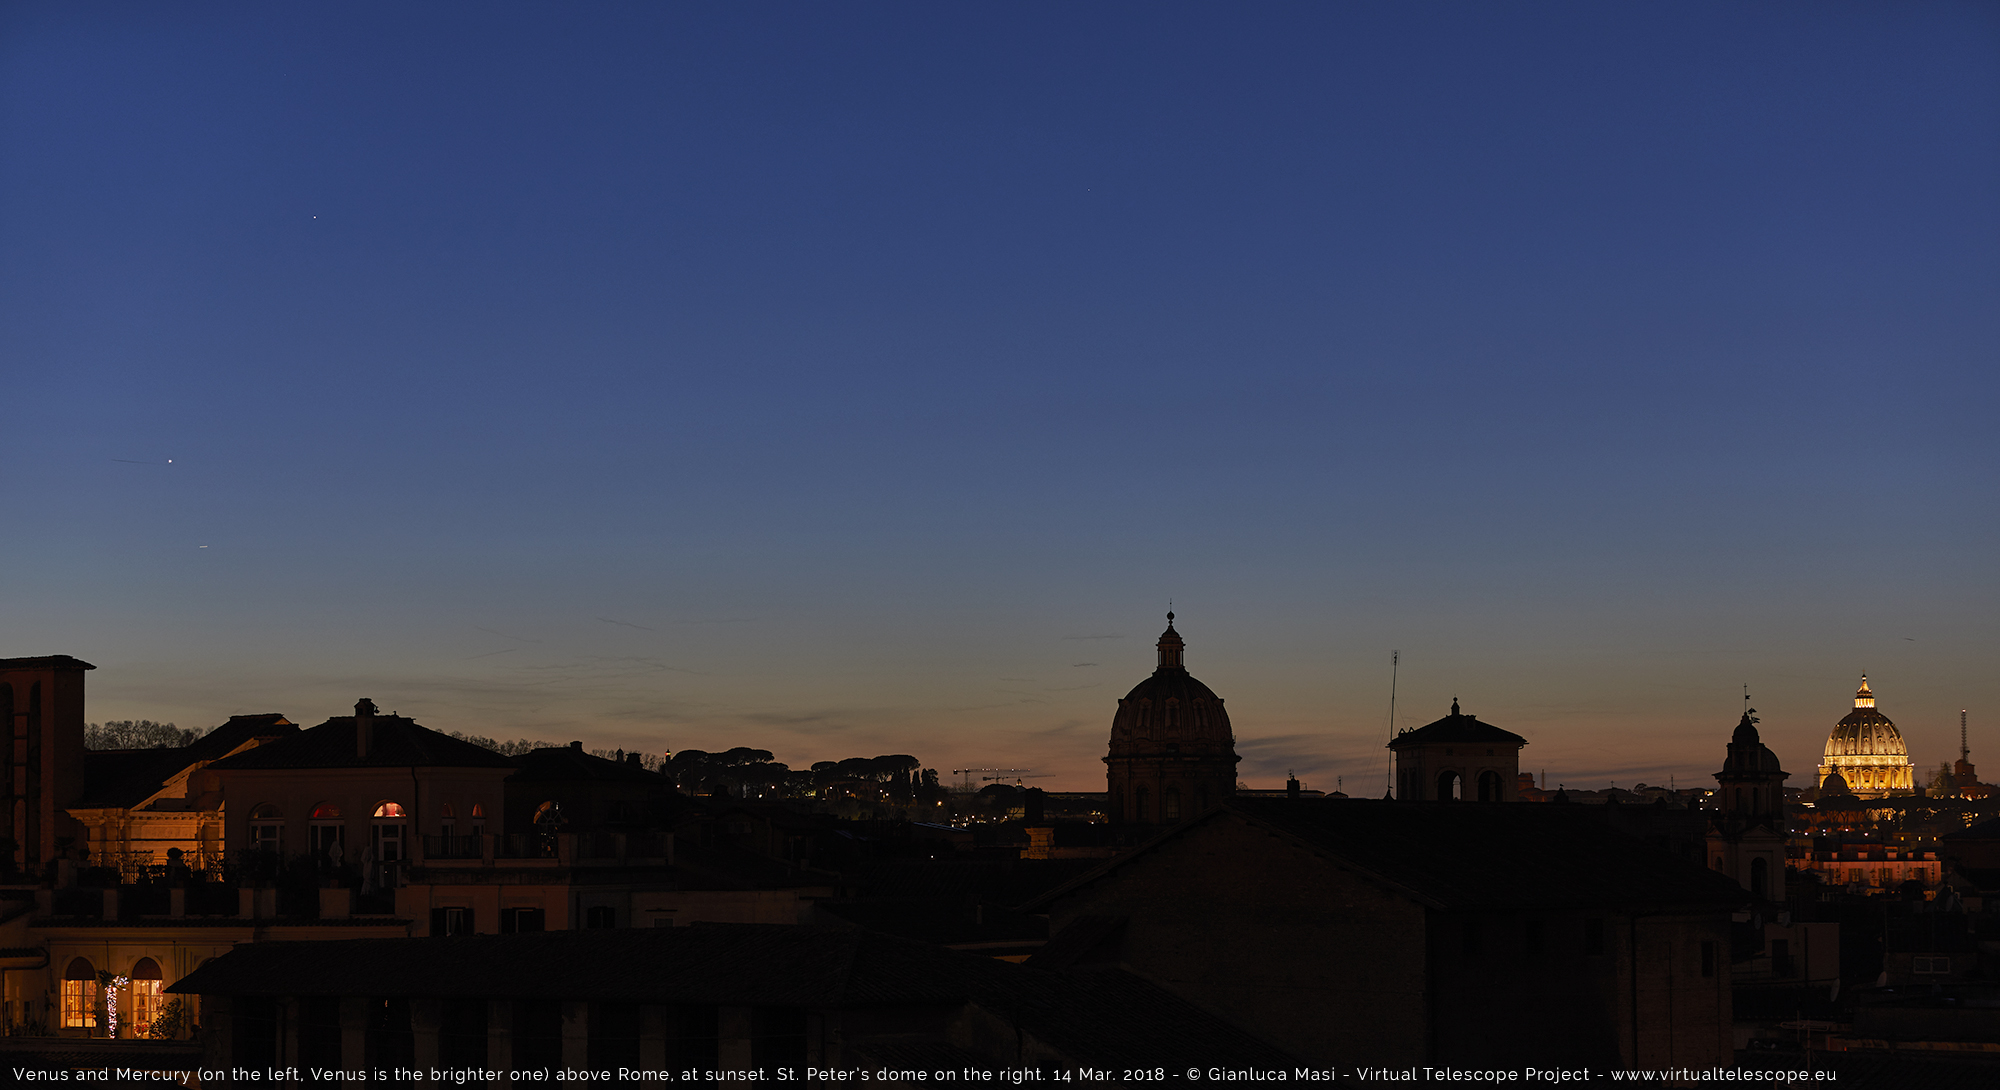 Venus and Mercury shine above the skyline of Rome, with St. Peter's dome on the right. 14 Mar. 2018